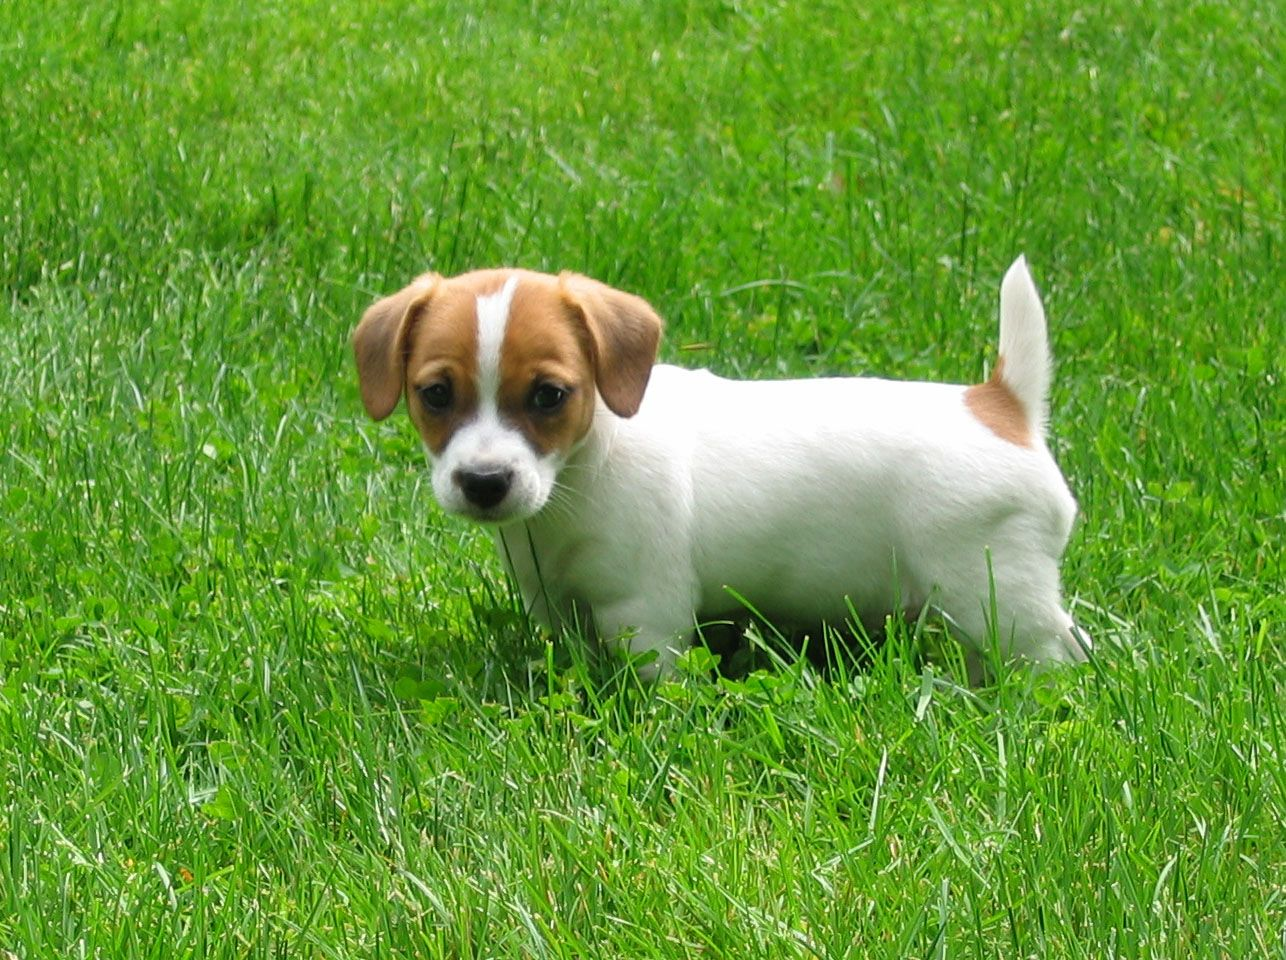 Adorable Jack Russell Terrier Puppies For more cute puppies